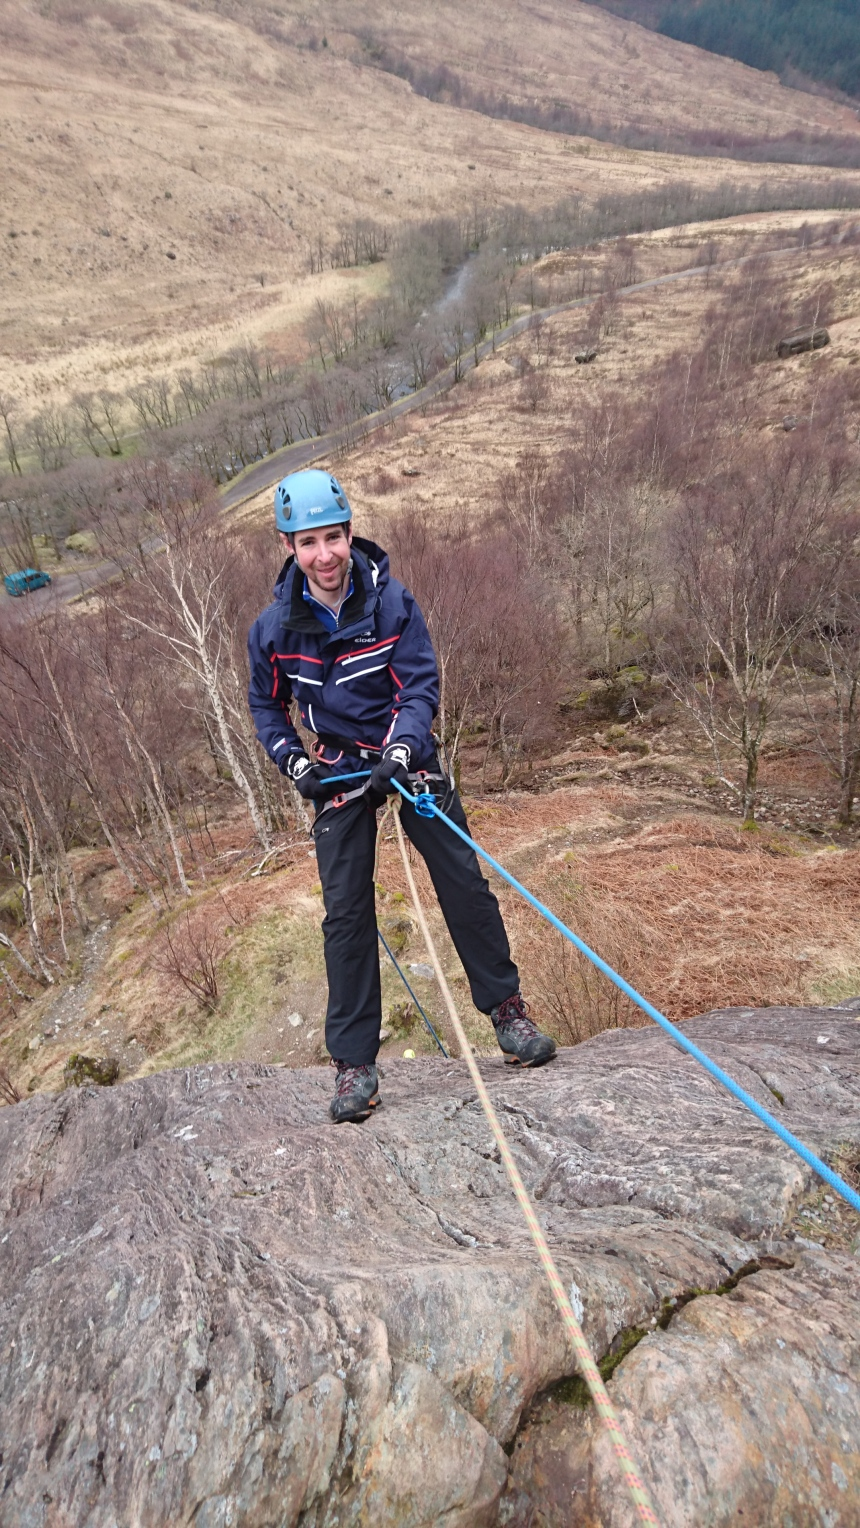 Paul enjoying abseiling